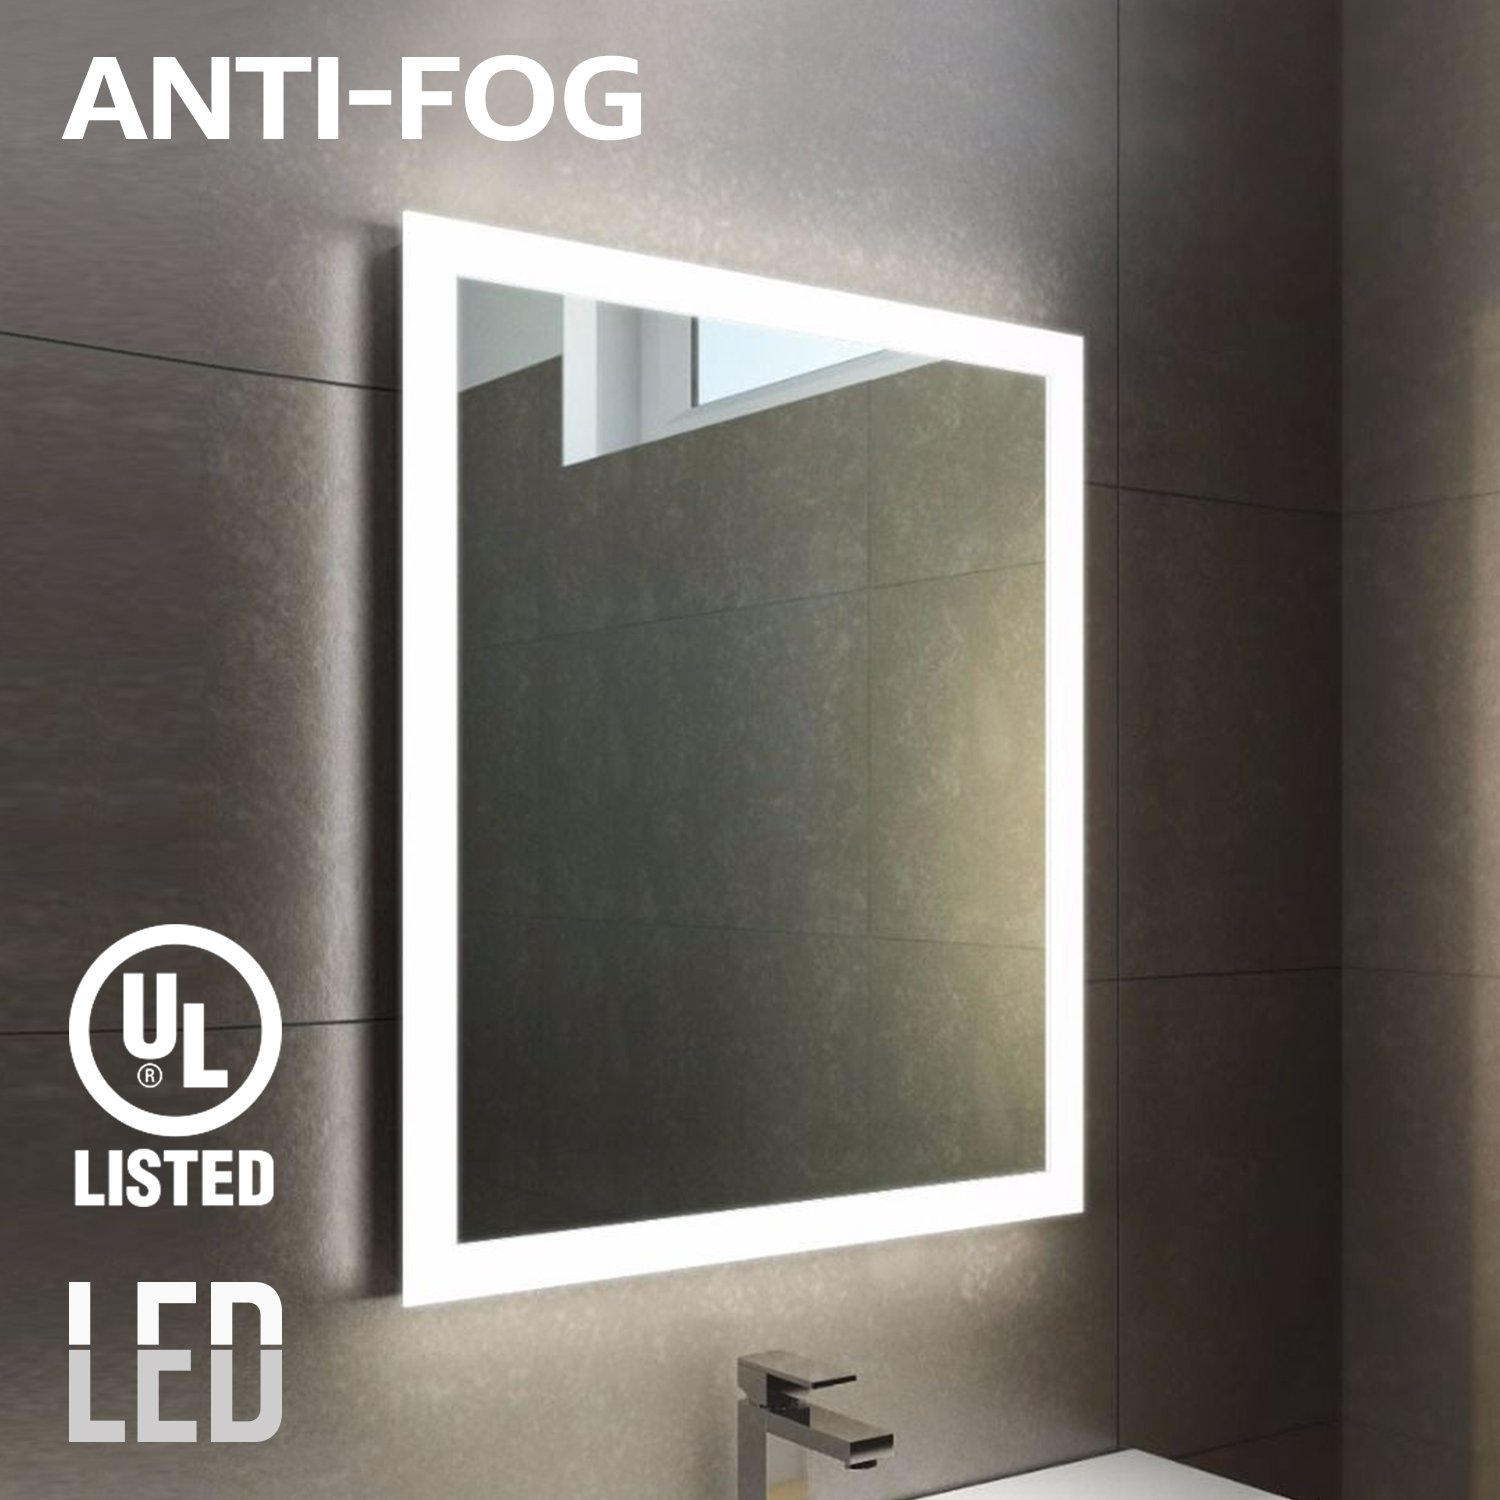 "Fogless LED Lighted Makeup Mirror with Backlit Strip, UL-listed, Wall Mounted Vanity Silver Mirror for Bathroom, SPA, Shower, Polished Edge, 32"" × 24"", Exterior Rectangle Ring"